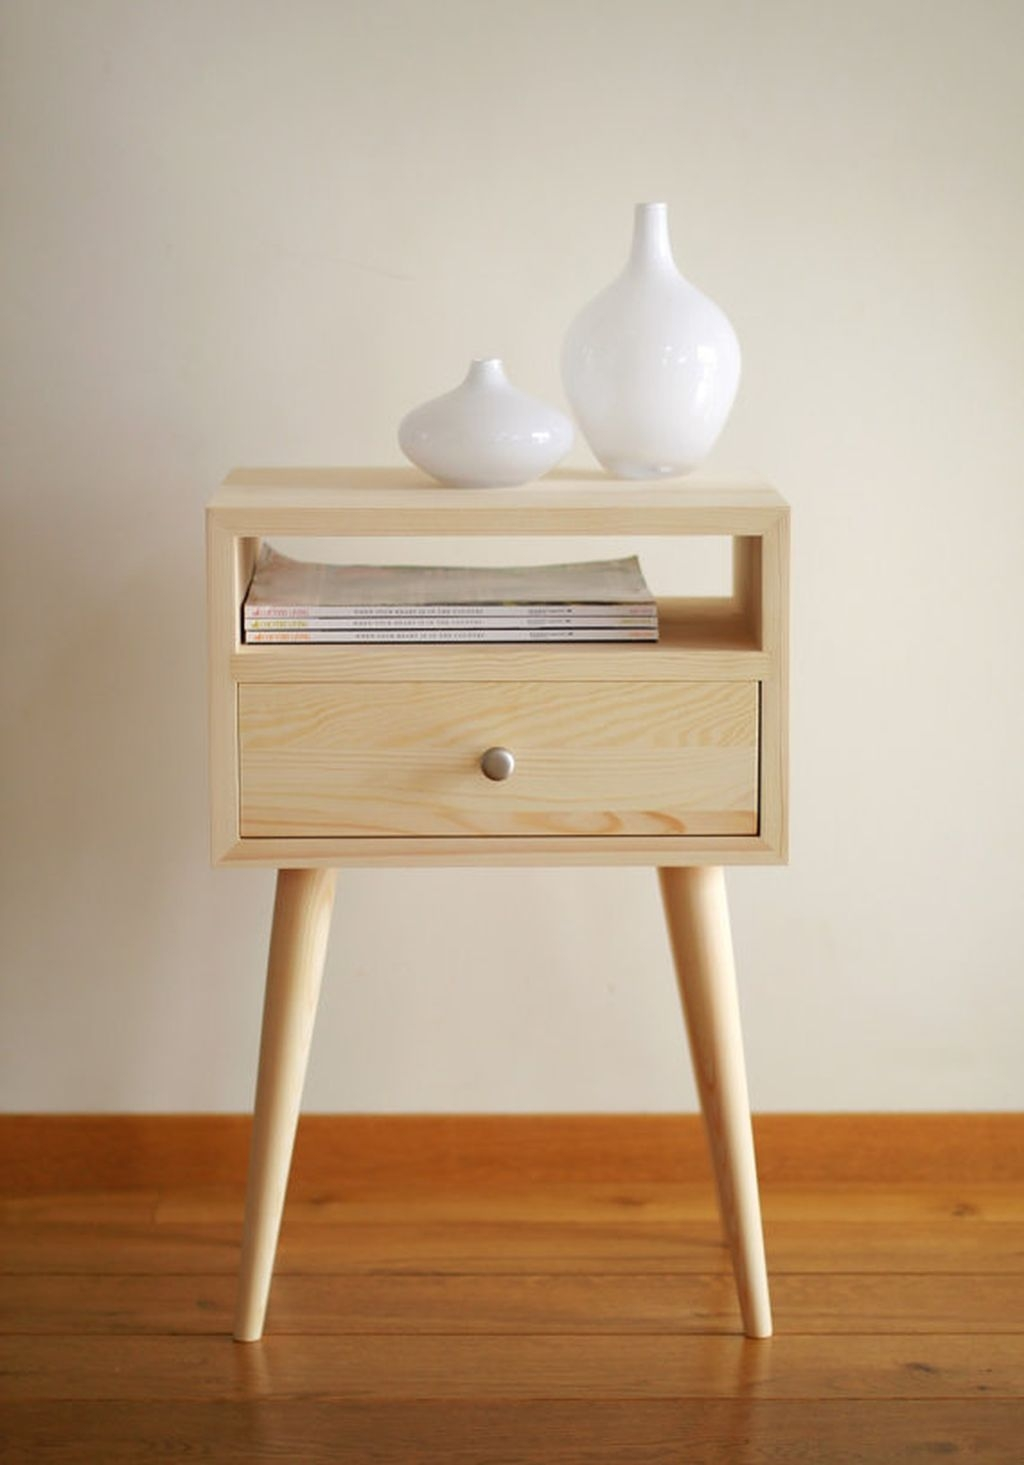 Inspiring Minimalist And Modern Furniture Design Ideas You Should Have At Home 86